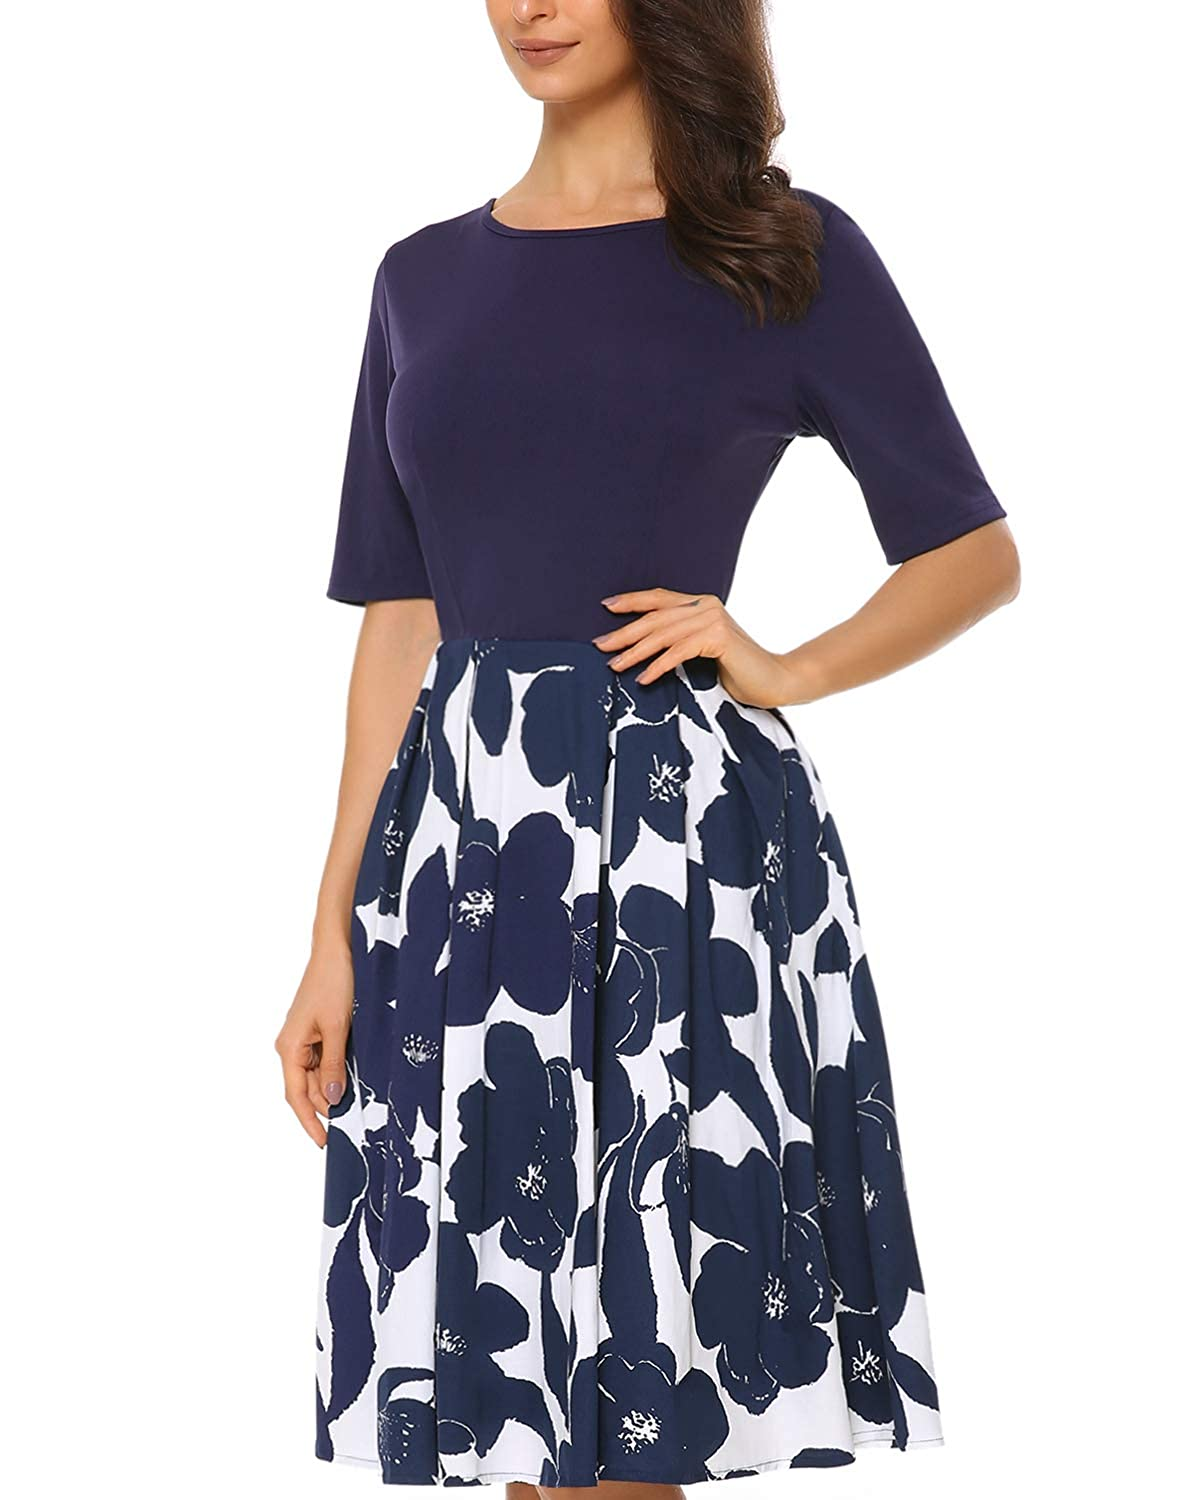 e89f53943e02 Mixfeer Women's Vintage Midi Dress Floral Scoop Neck Long Sleeve A-line Cocktail  Party Swing Dress with Pockets at Amazon Women's Clothing store: